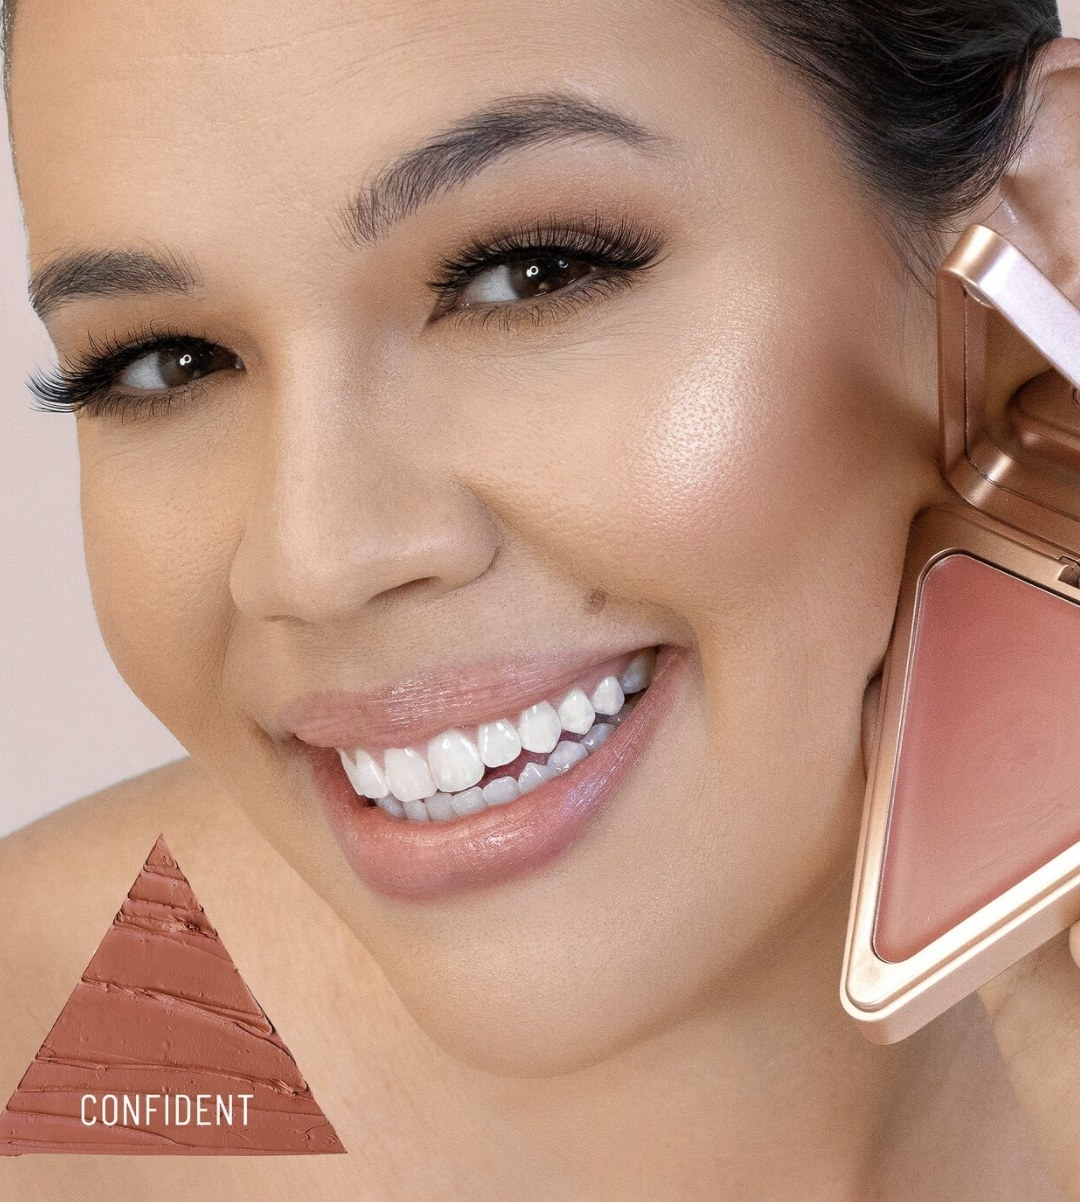 """An adult is smiling while holding up the triangular shaped blush up to their cheek, and there is a triangular texture shot that says """"CONFIDENT"""" in the bottom left corner"""